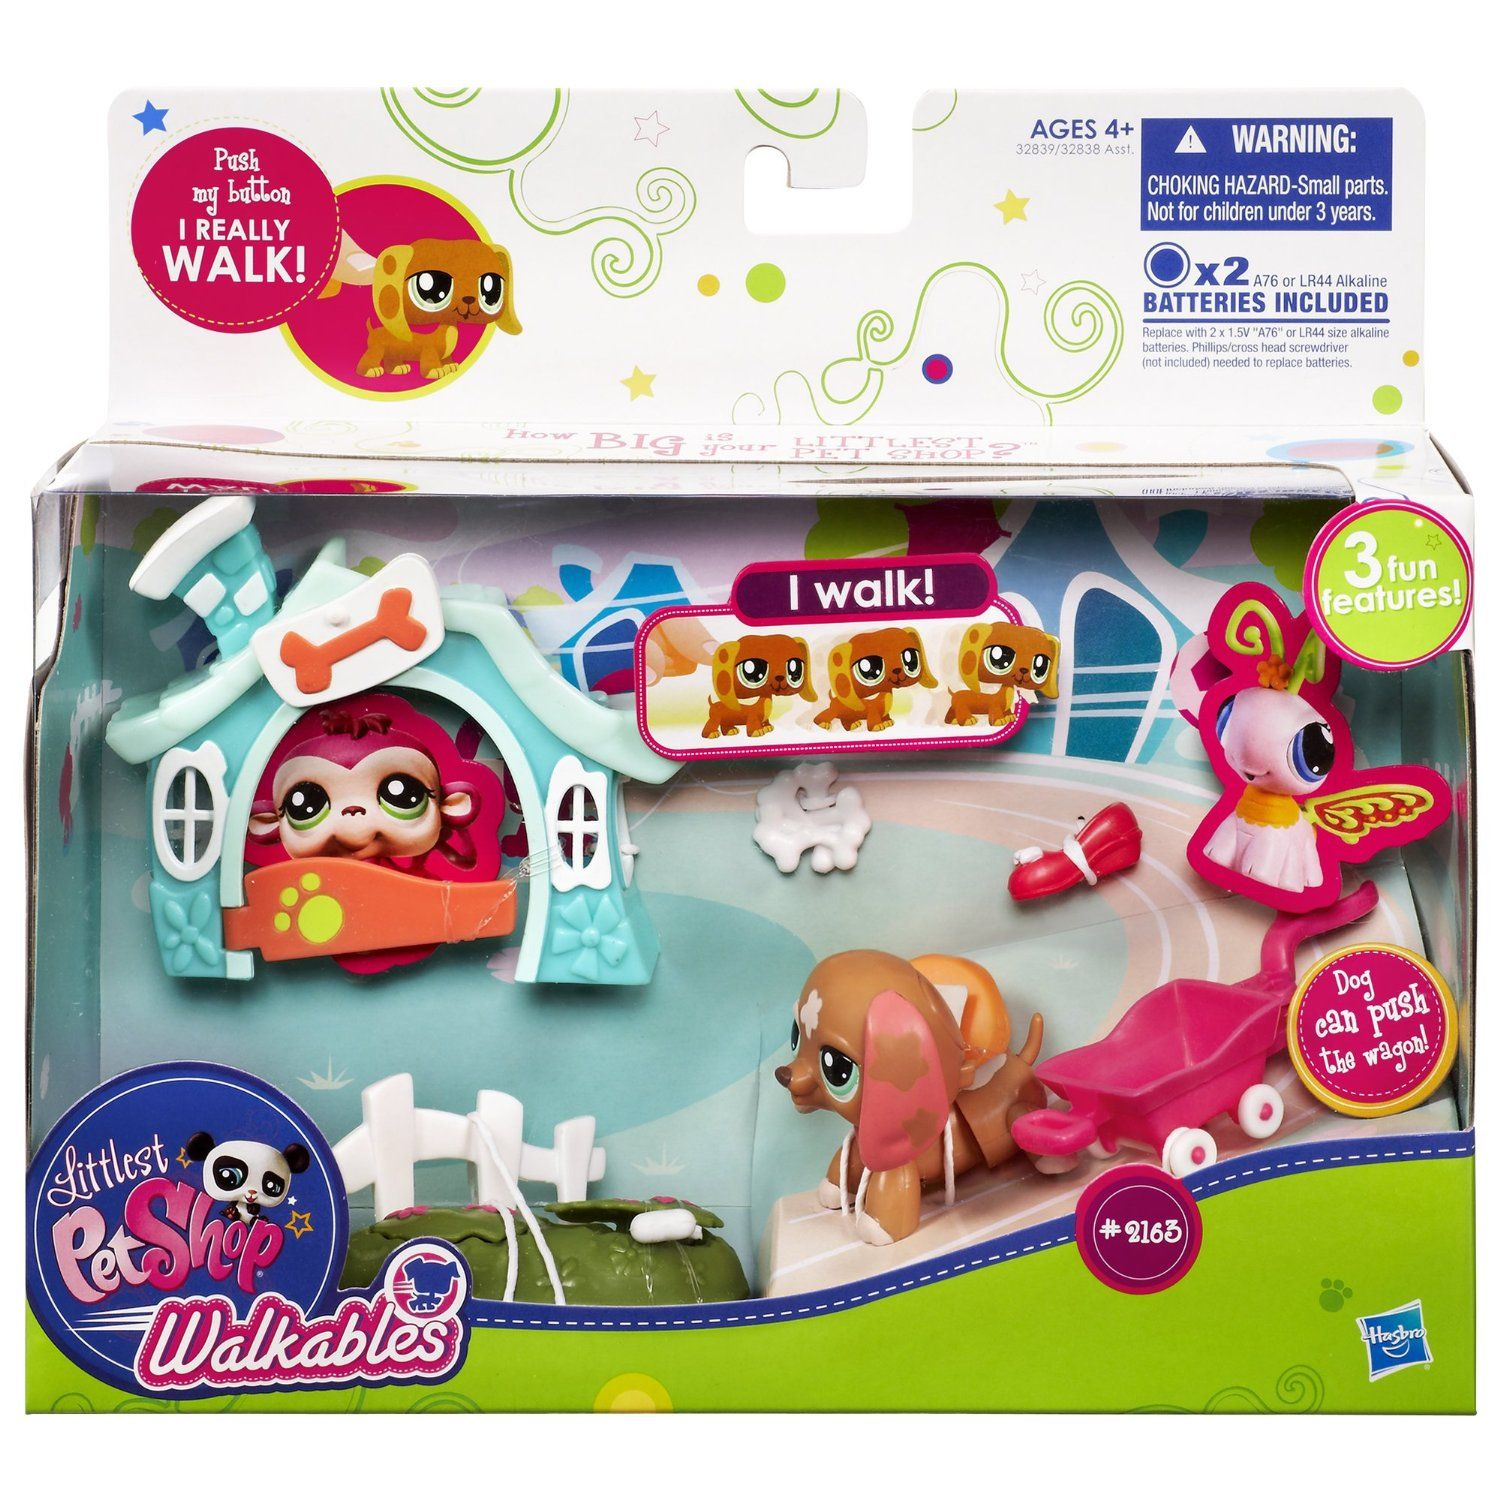 Amazon Com Littlest Pet Shop Walkables Themed Pack Dachshund 2163 Toys Games Littlest Pet Shop Pet Shop Lps Toys